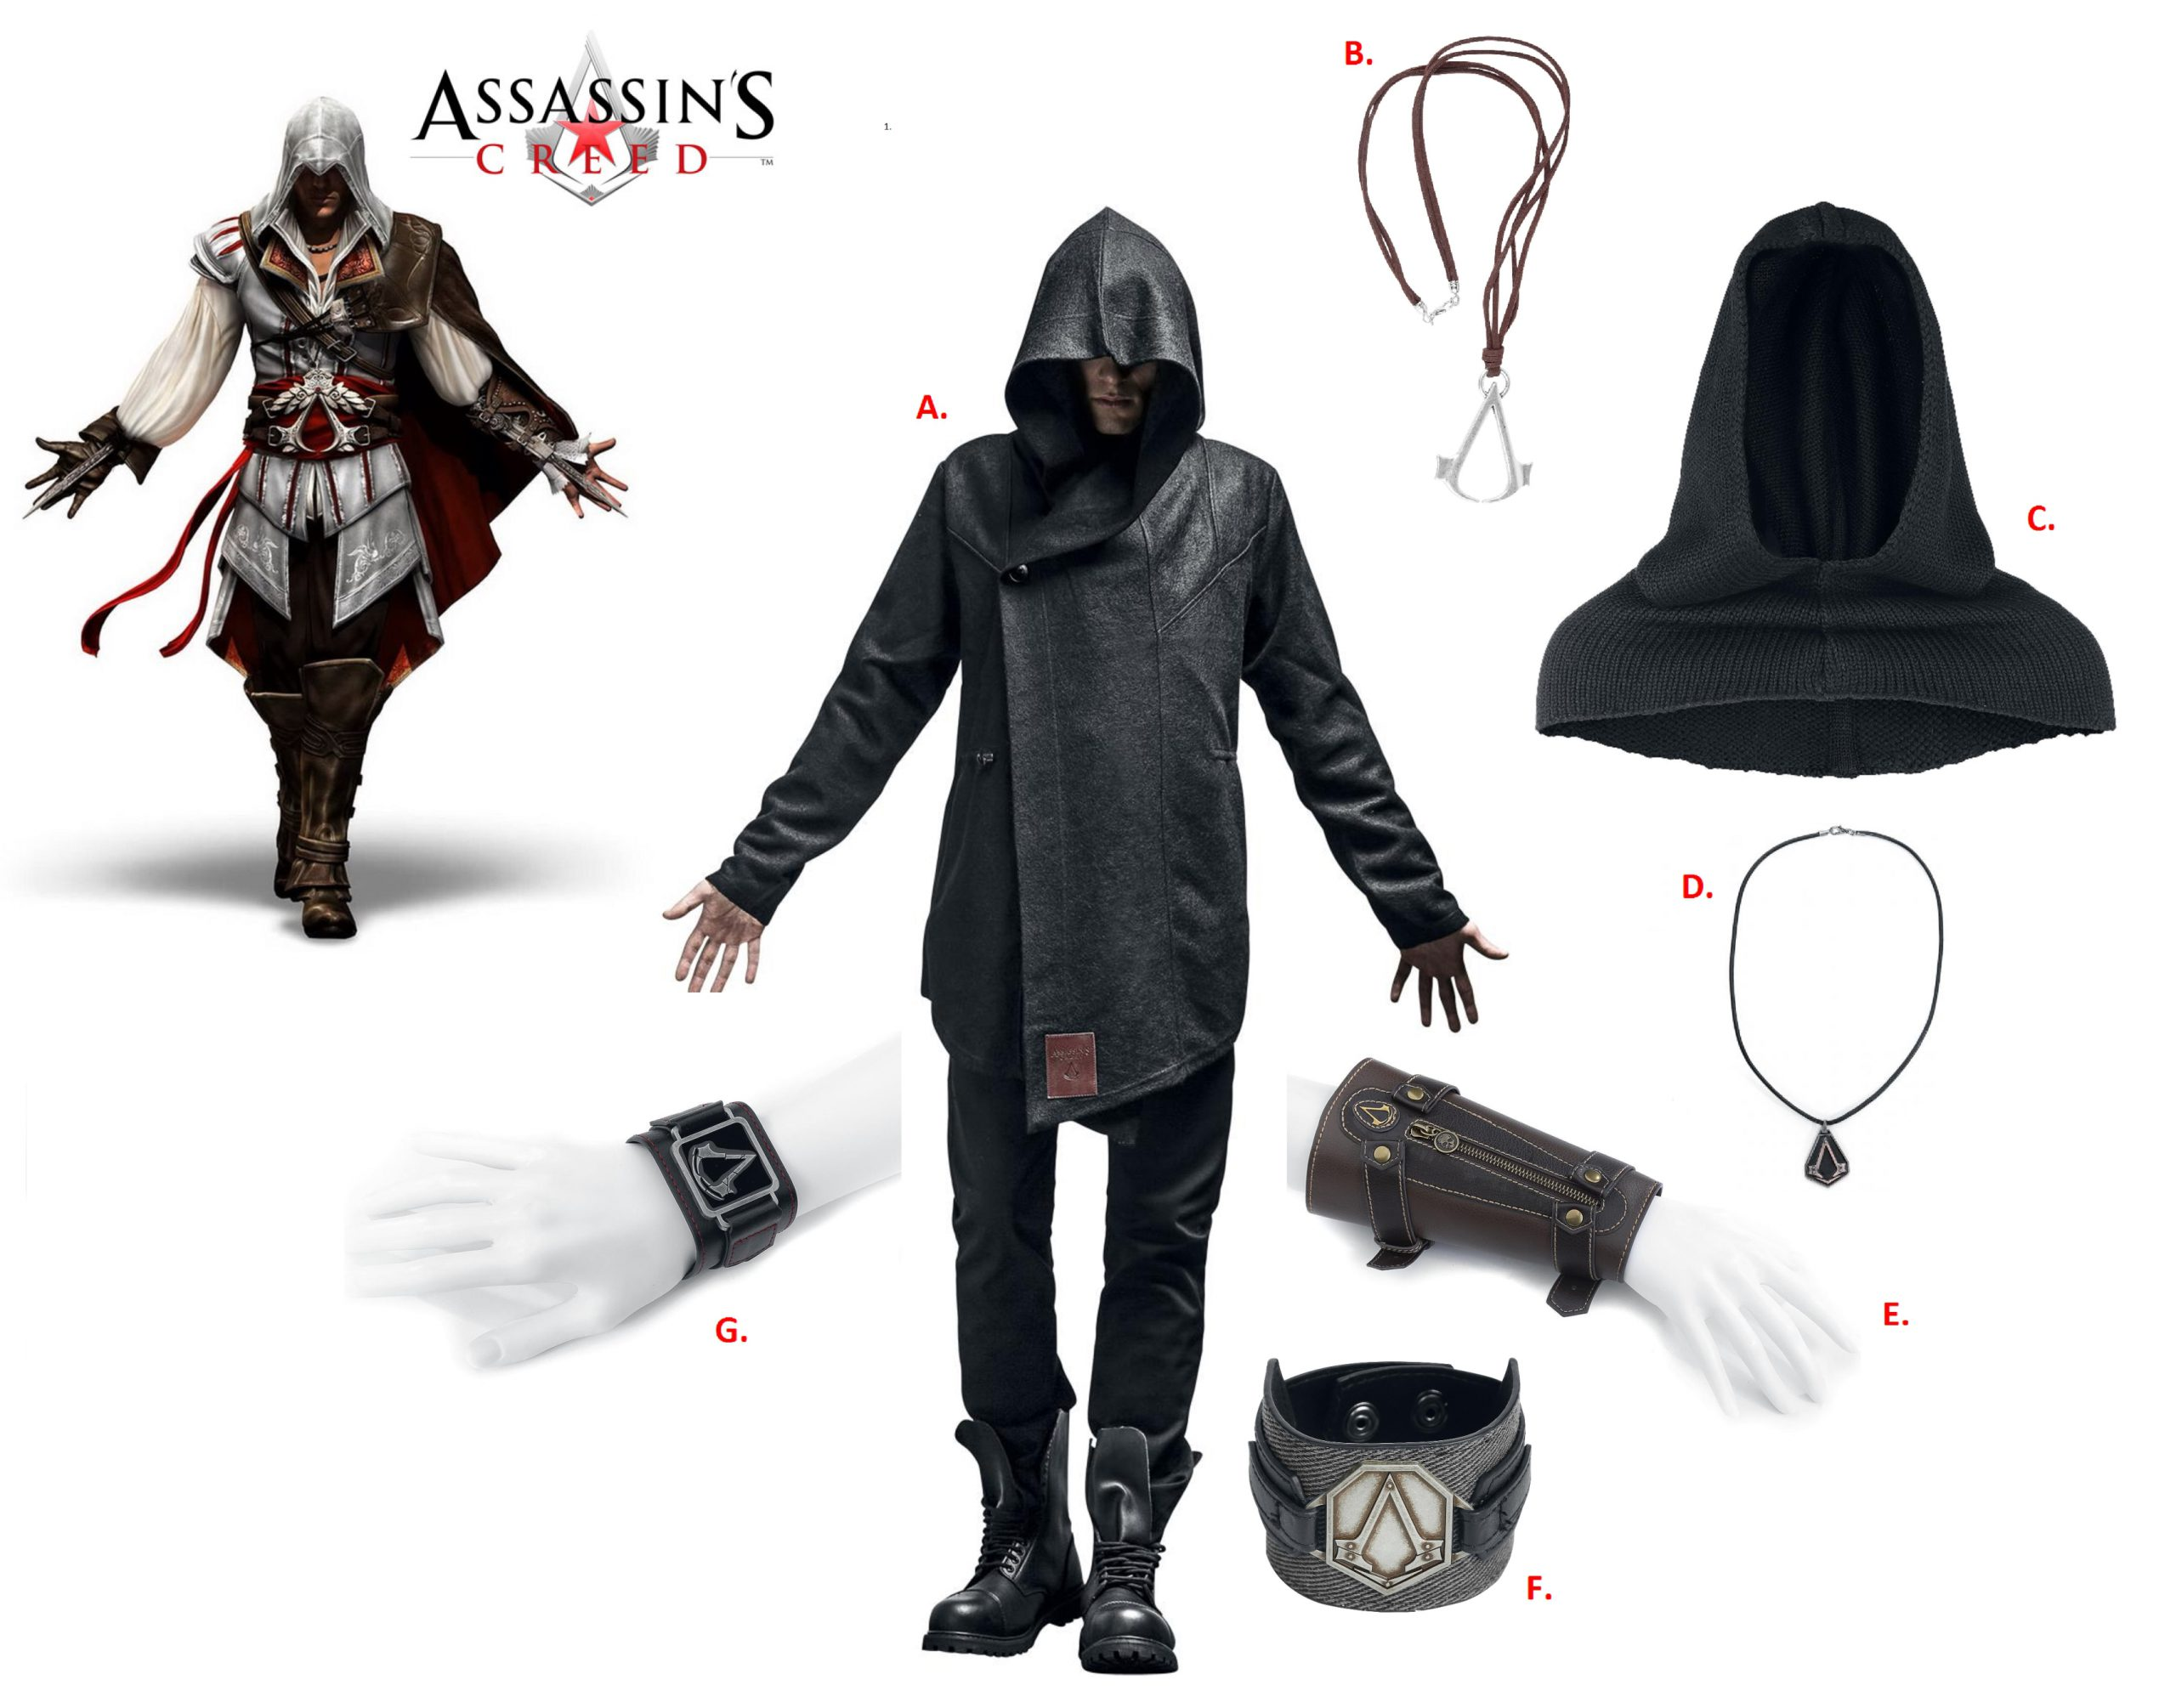 assassins creed merchandise collage